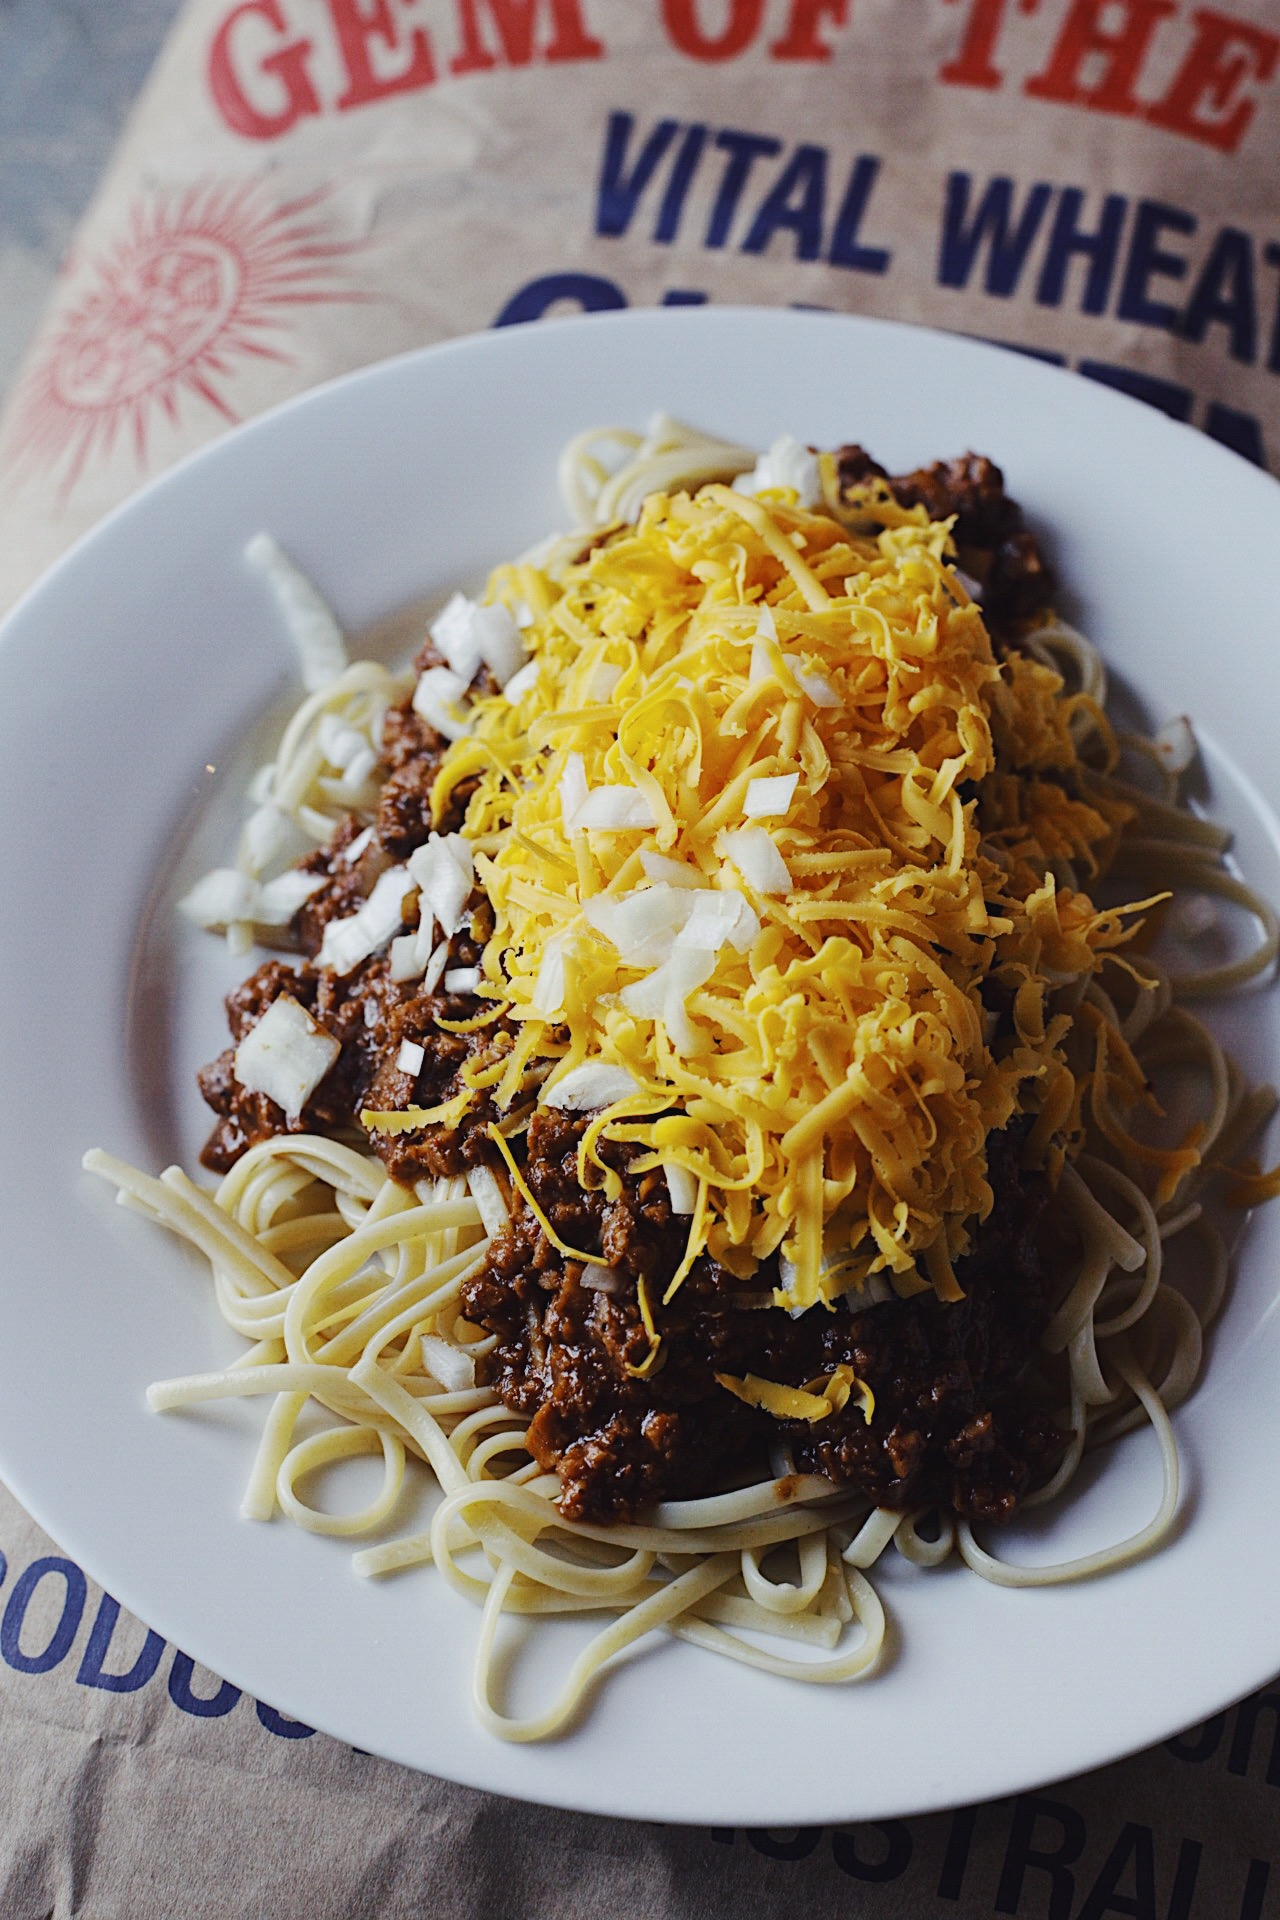 Rich & Unique - Cincinnati chili is an easy crowd pleaser!!